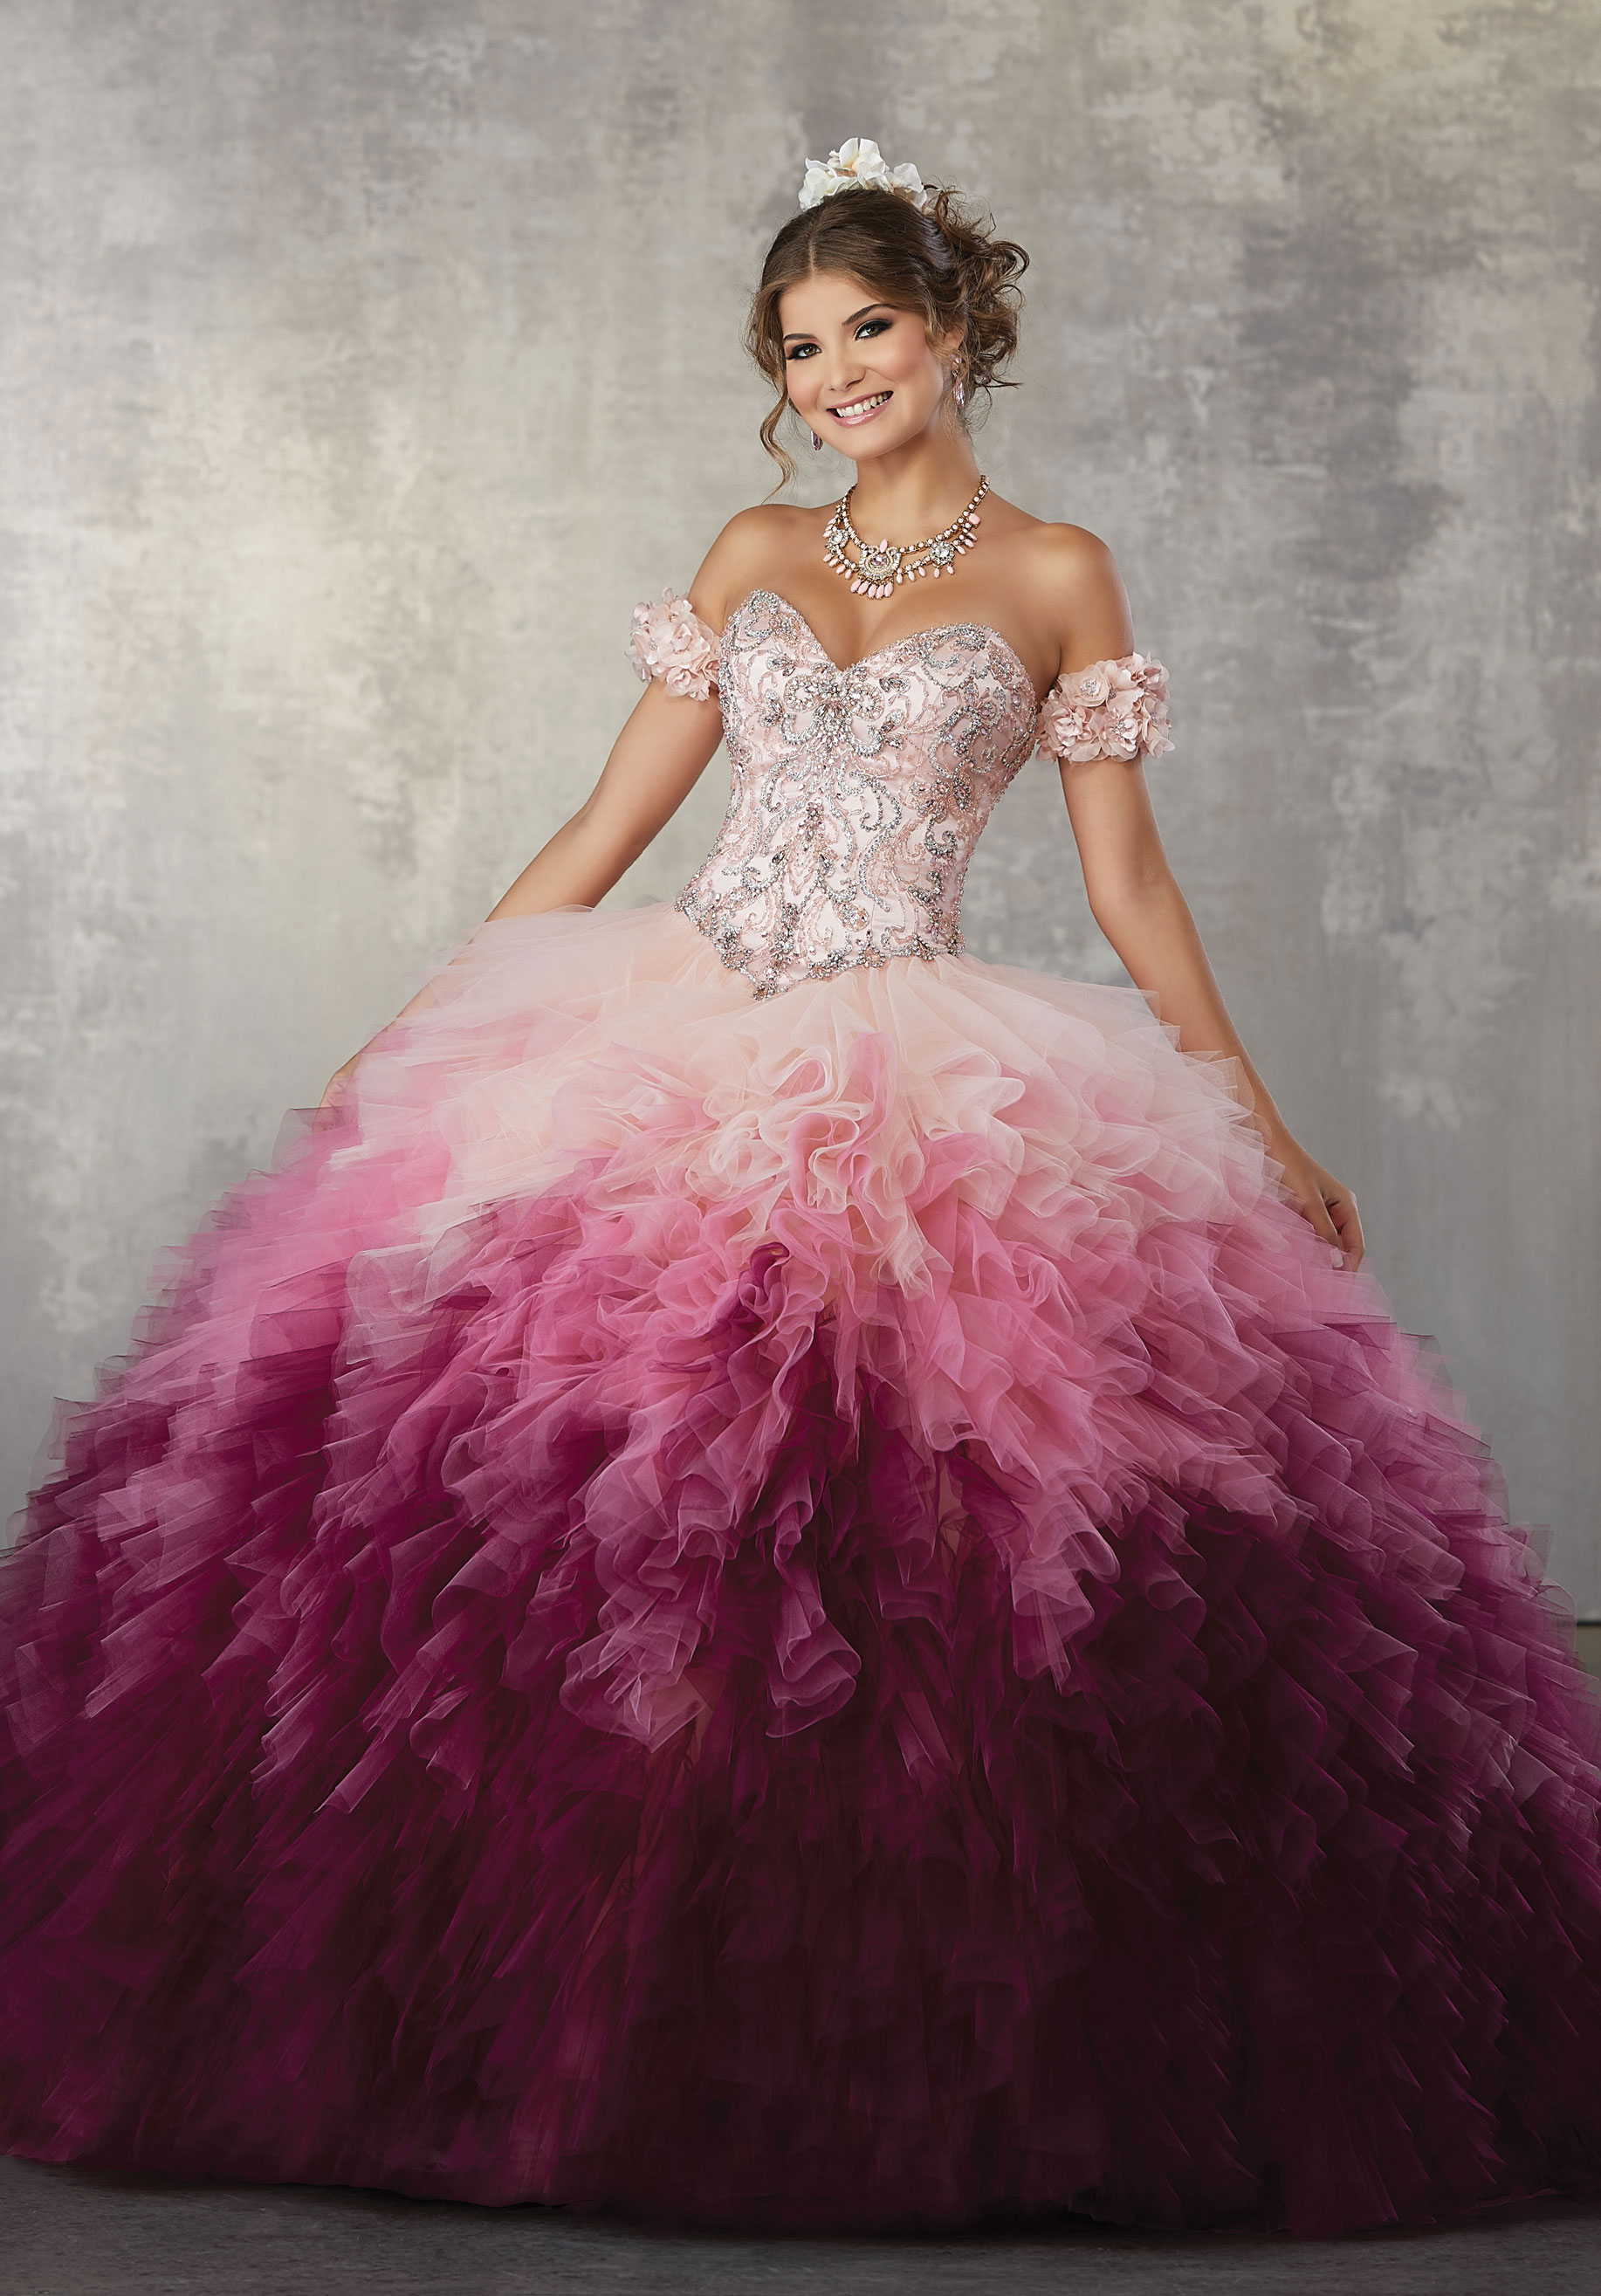 34f767e2c0f Home   Quinceanera Dresses   Vizcaya Collection   Jewel Beaded Bodice on a  Ruffled Ombré Tulle Ballgown